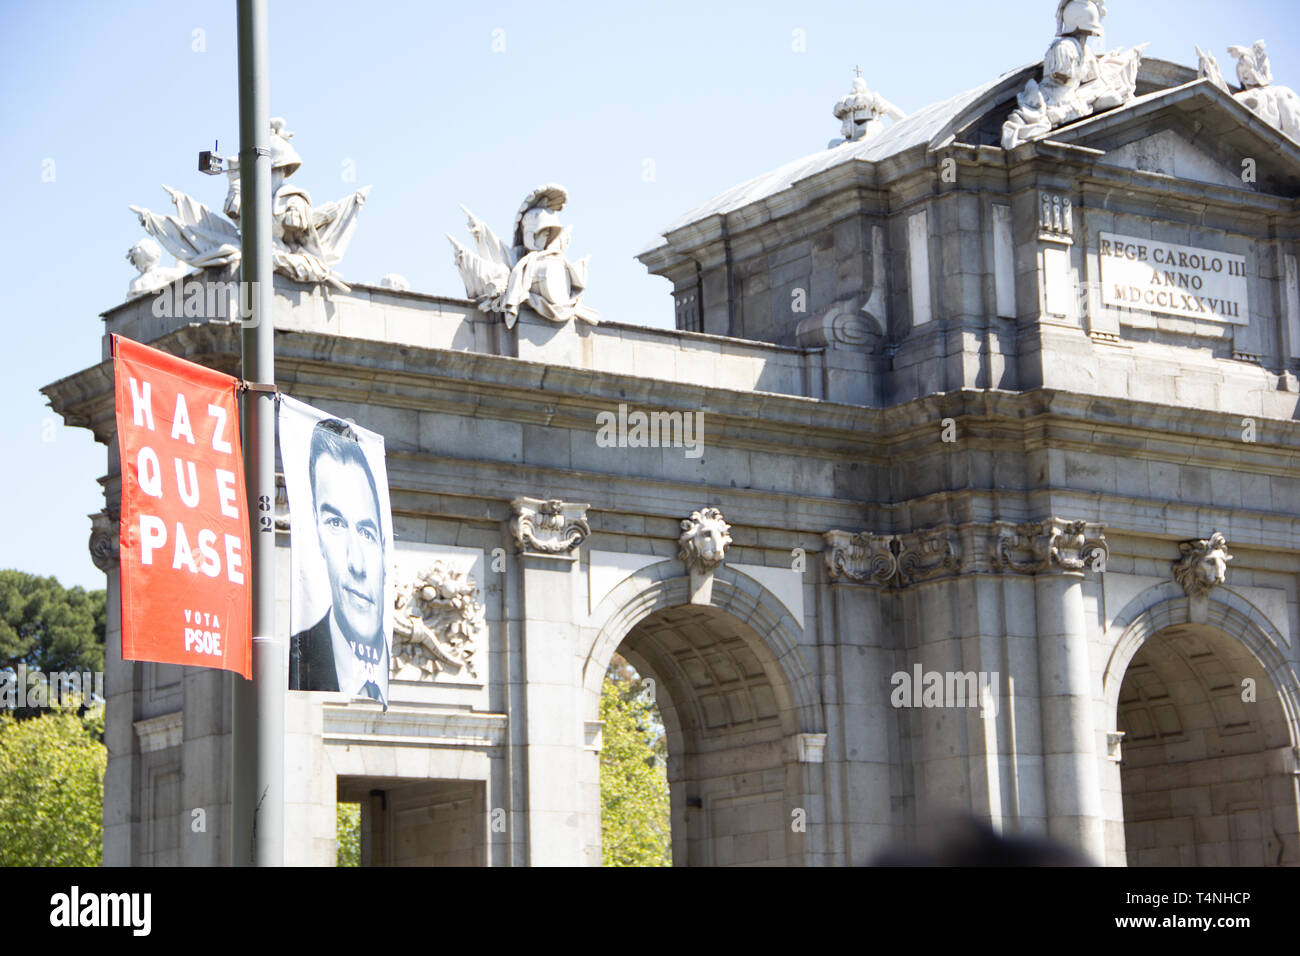 Madrid, Spain - 04 12 2019: Political campaign banners of the socialistic party PSOE, showing their lead candidate for president  Pedro Sanchez with m - Stock Image